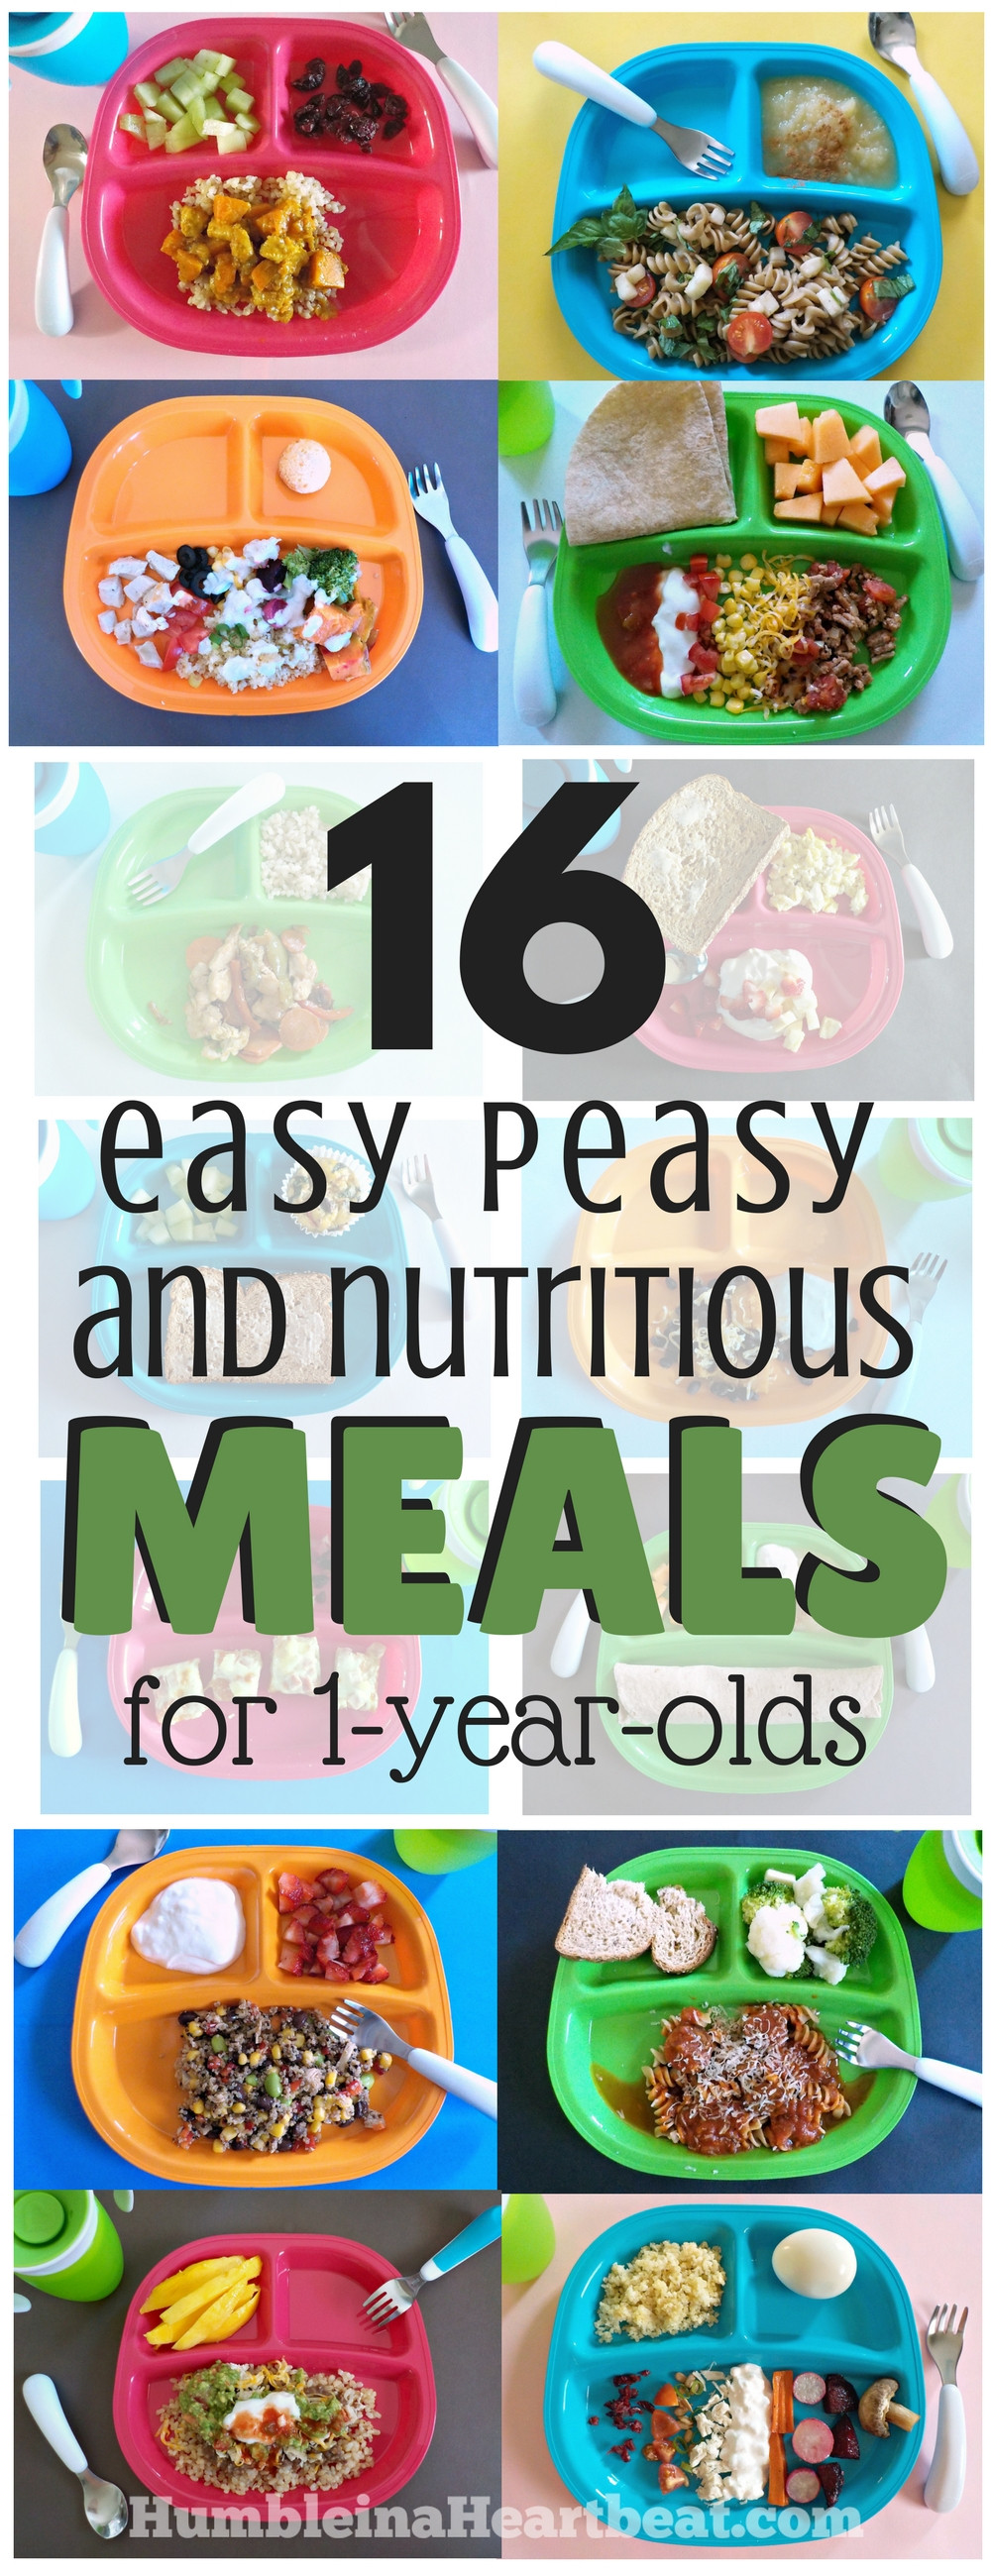 Healthy Snacks For One Year Olds  16 Simple Meals for Your 1 Year Old that Will Make You